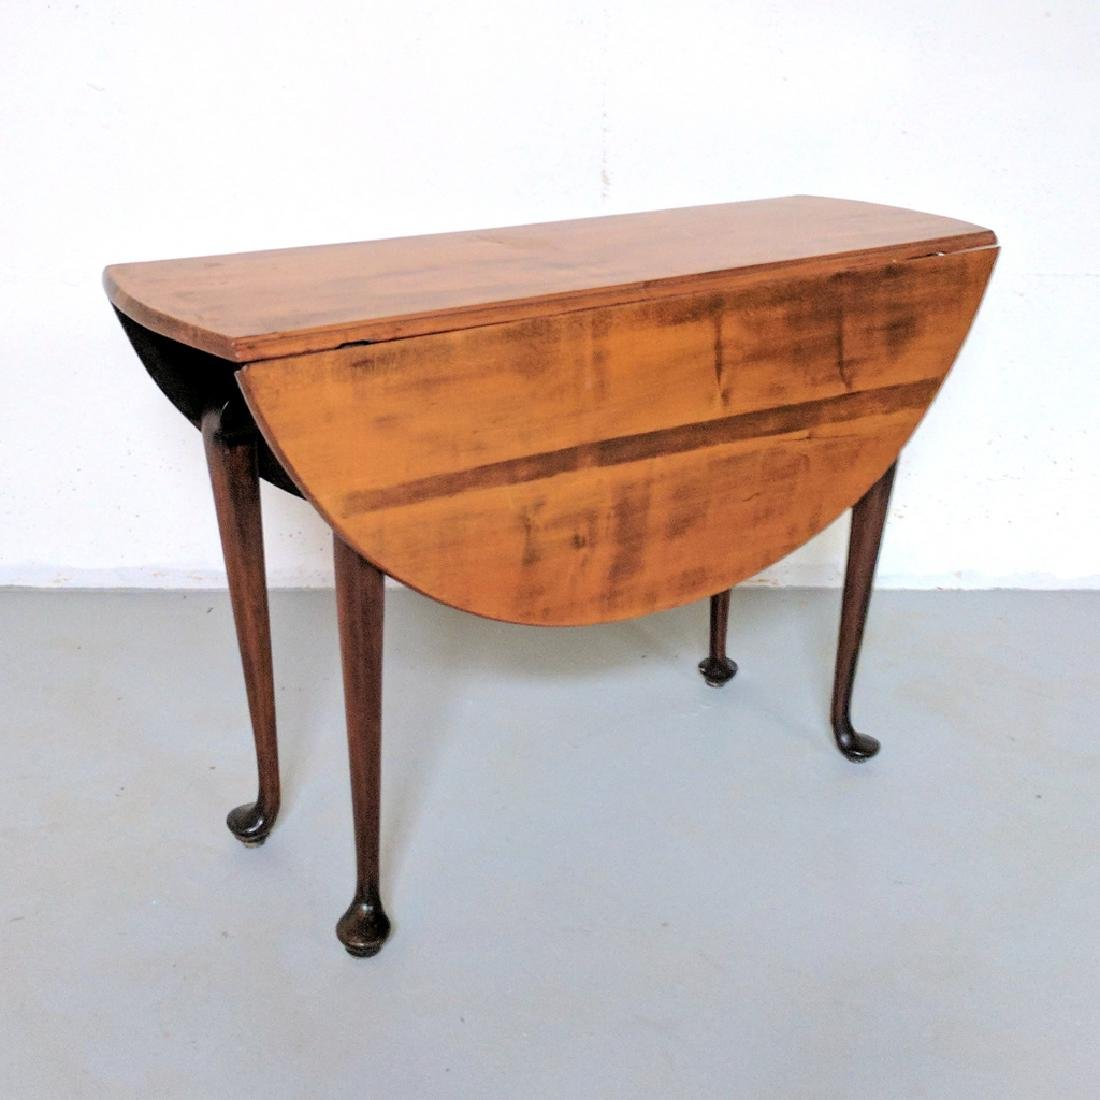 QUEEN ANNE MAPLE / CHERRY DROP-LEAF TABLE